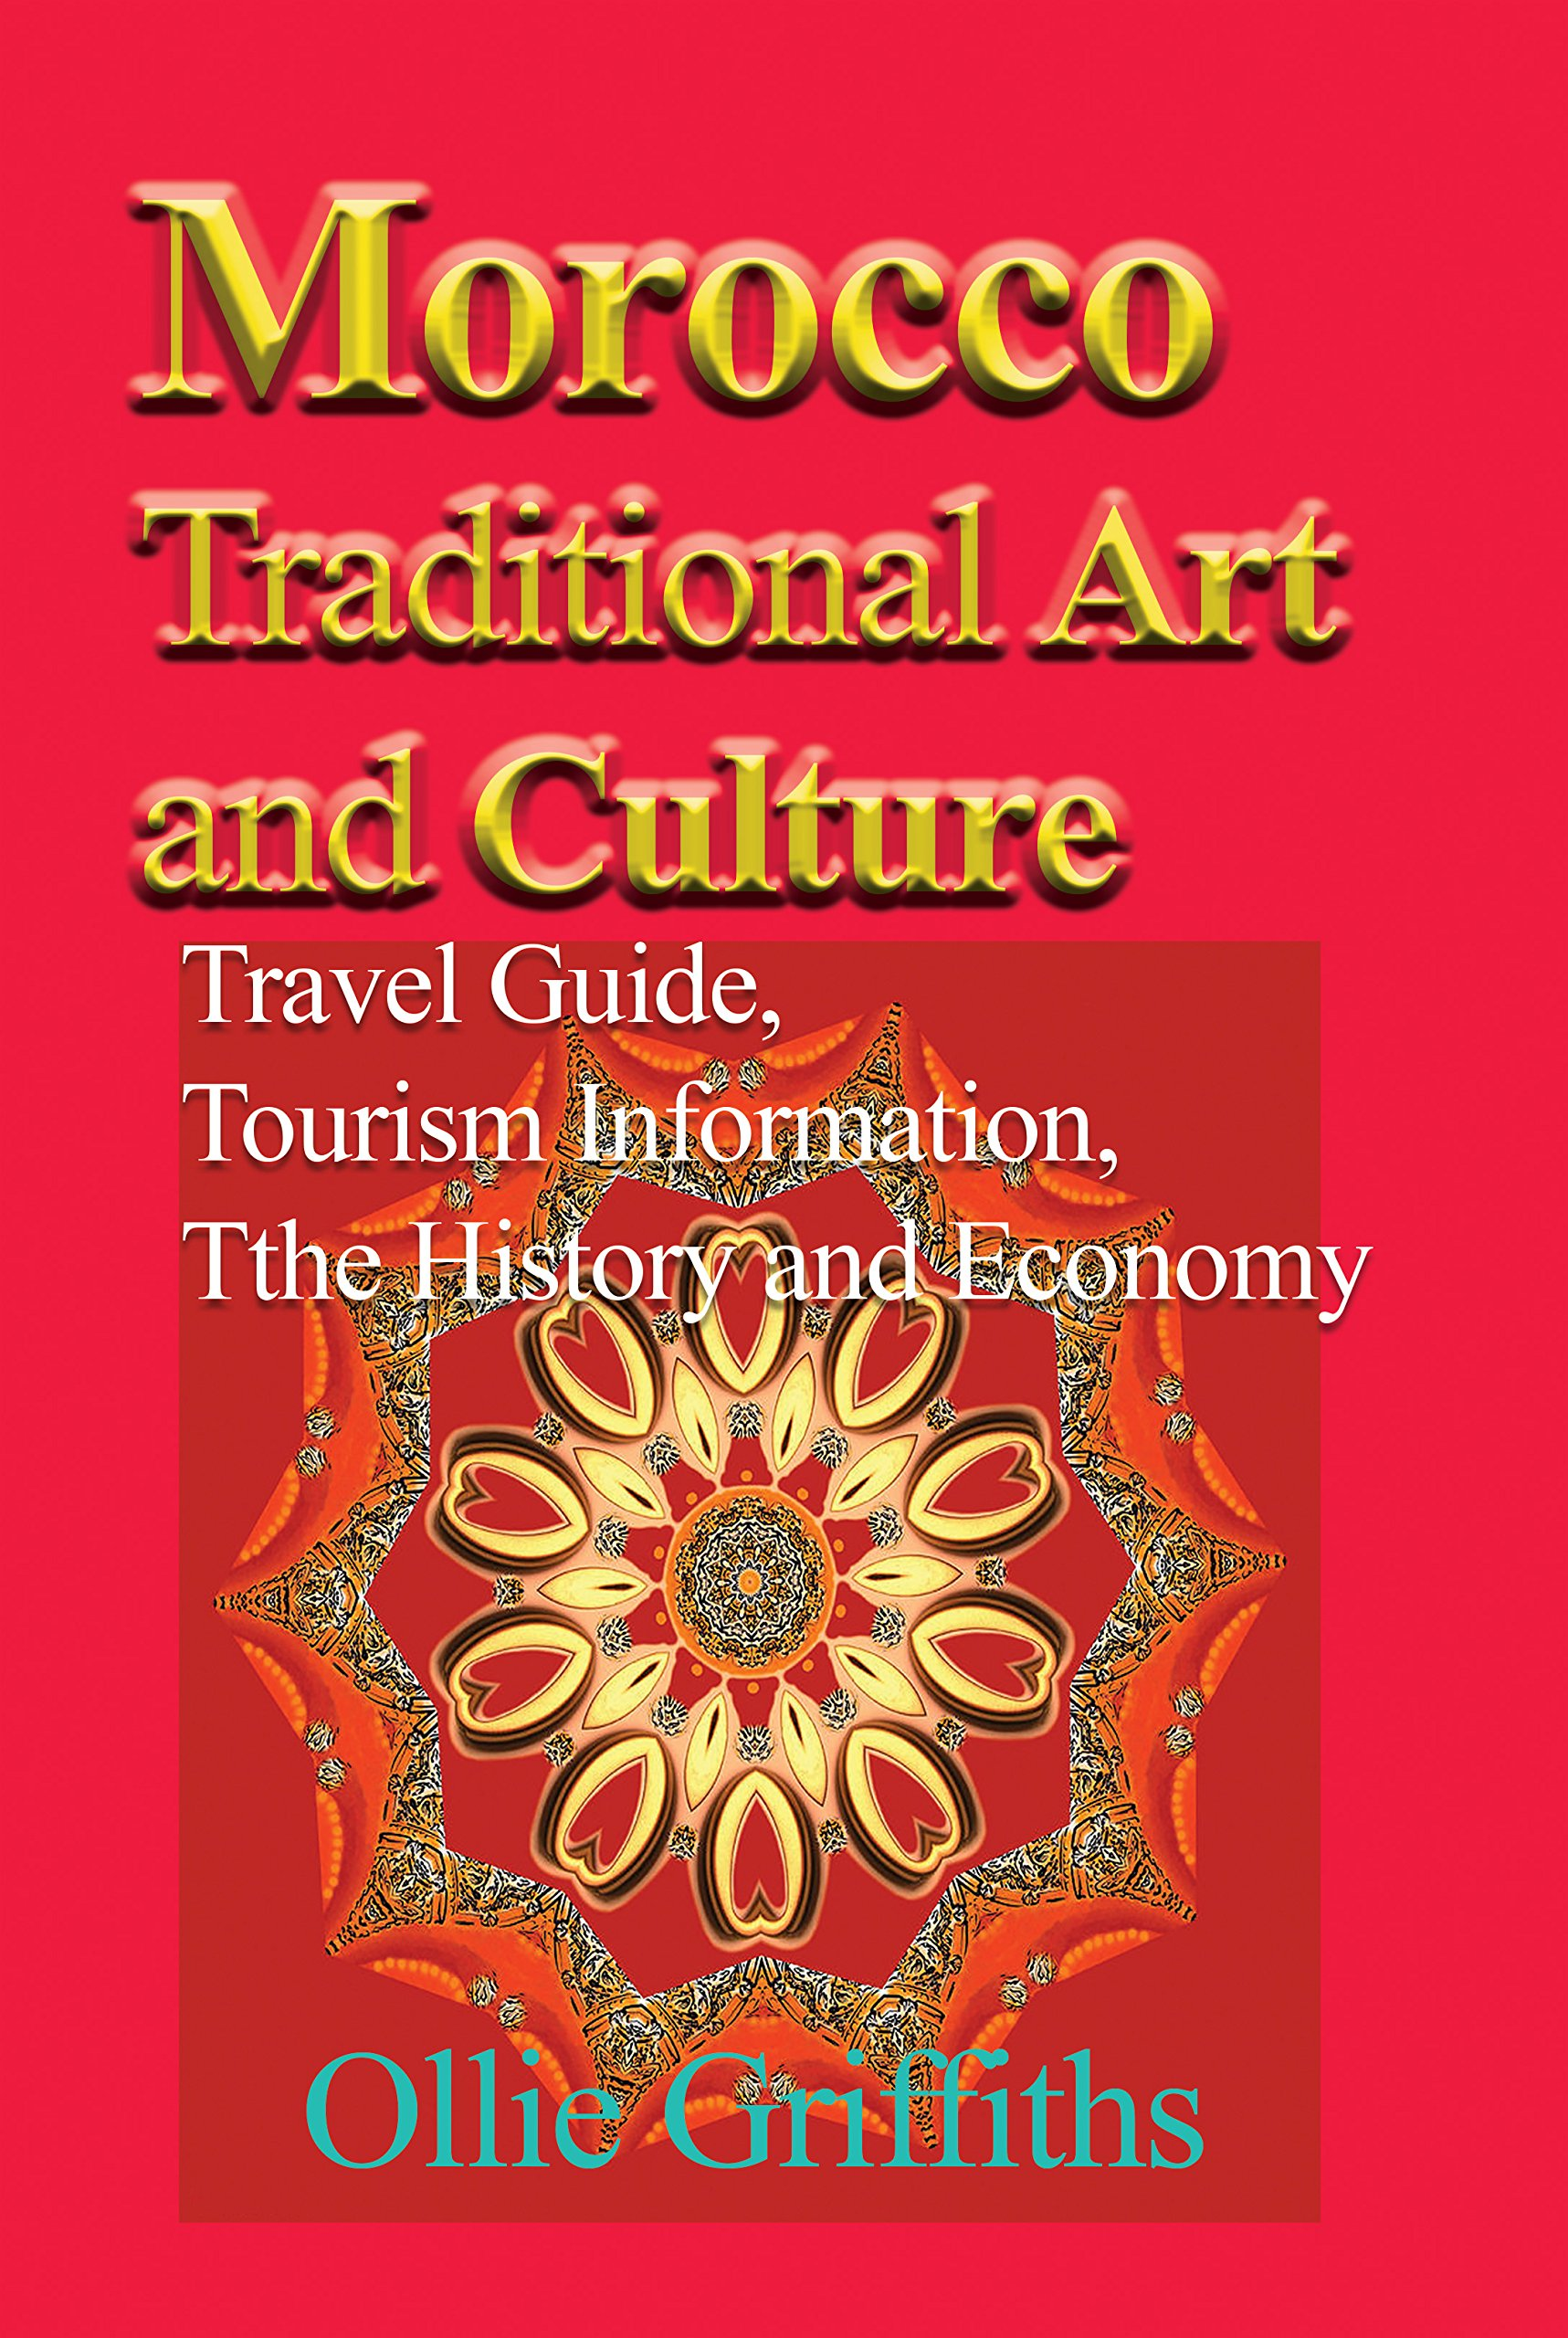 Download Morocco Traditional Art and Culture:Travel Guide, Tourism Information, the History and Economy PDF